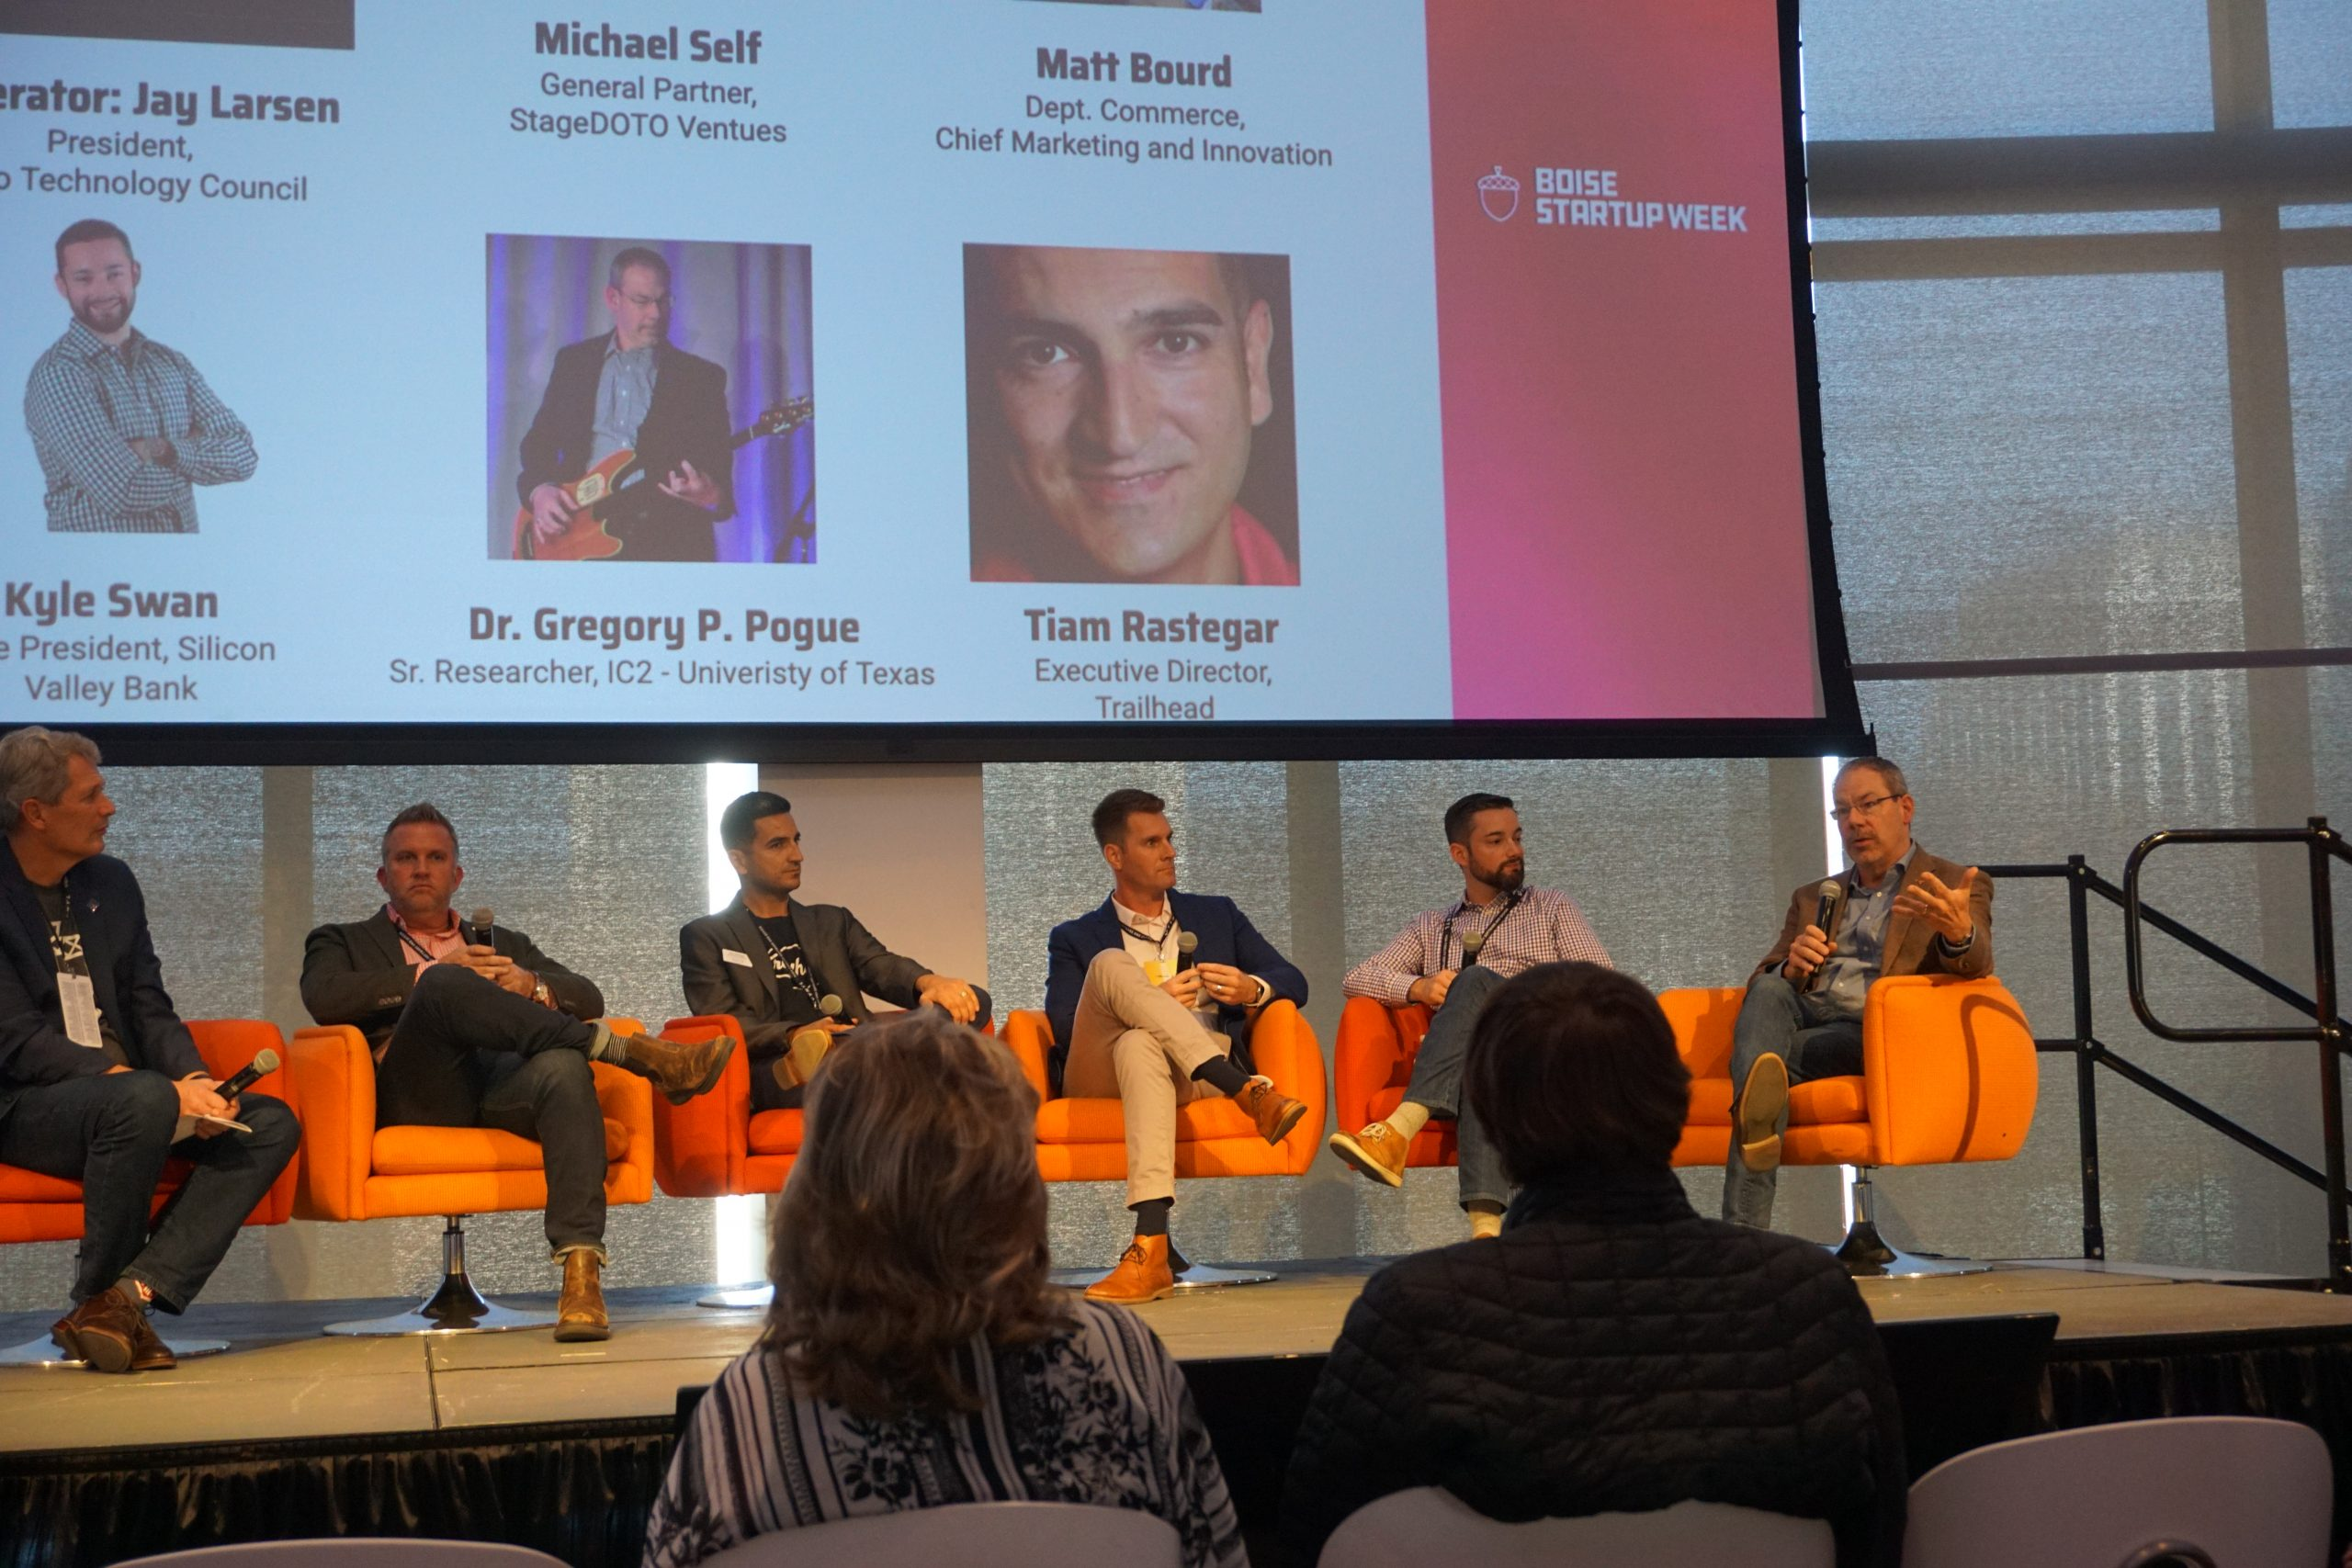 Panelists at Boise Startup Week